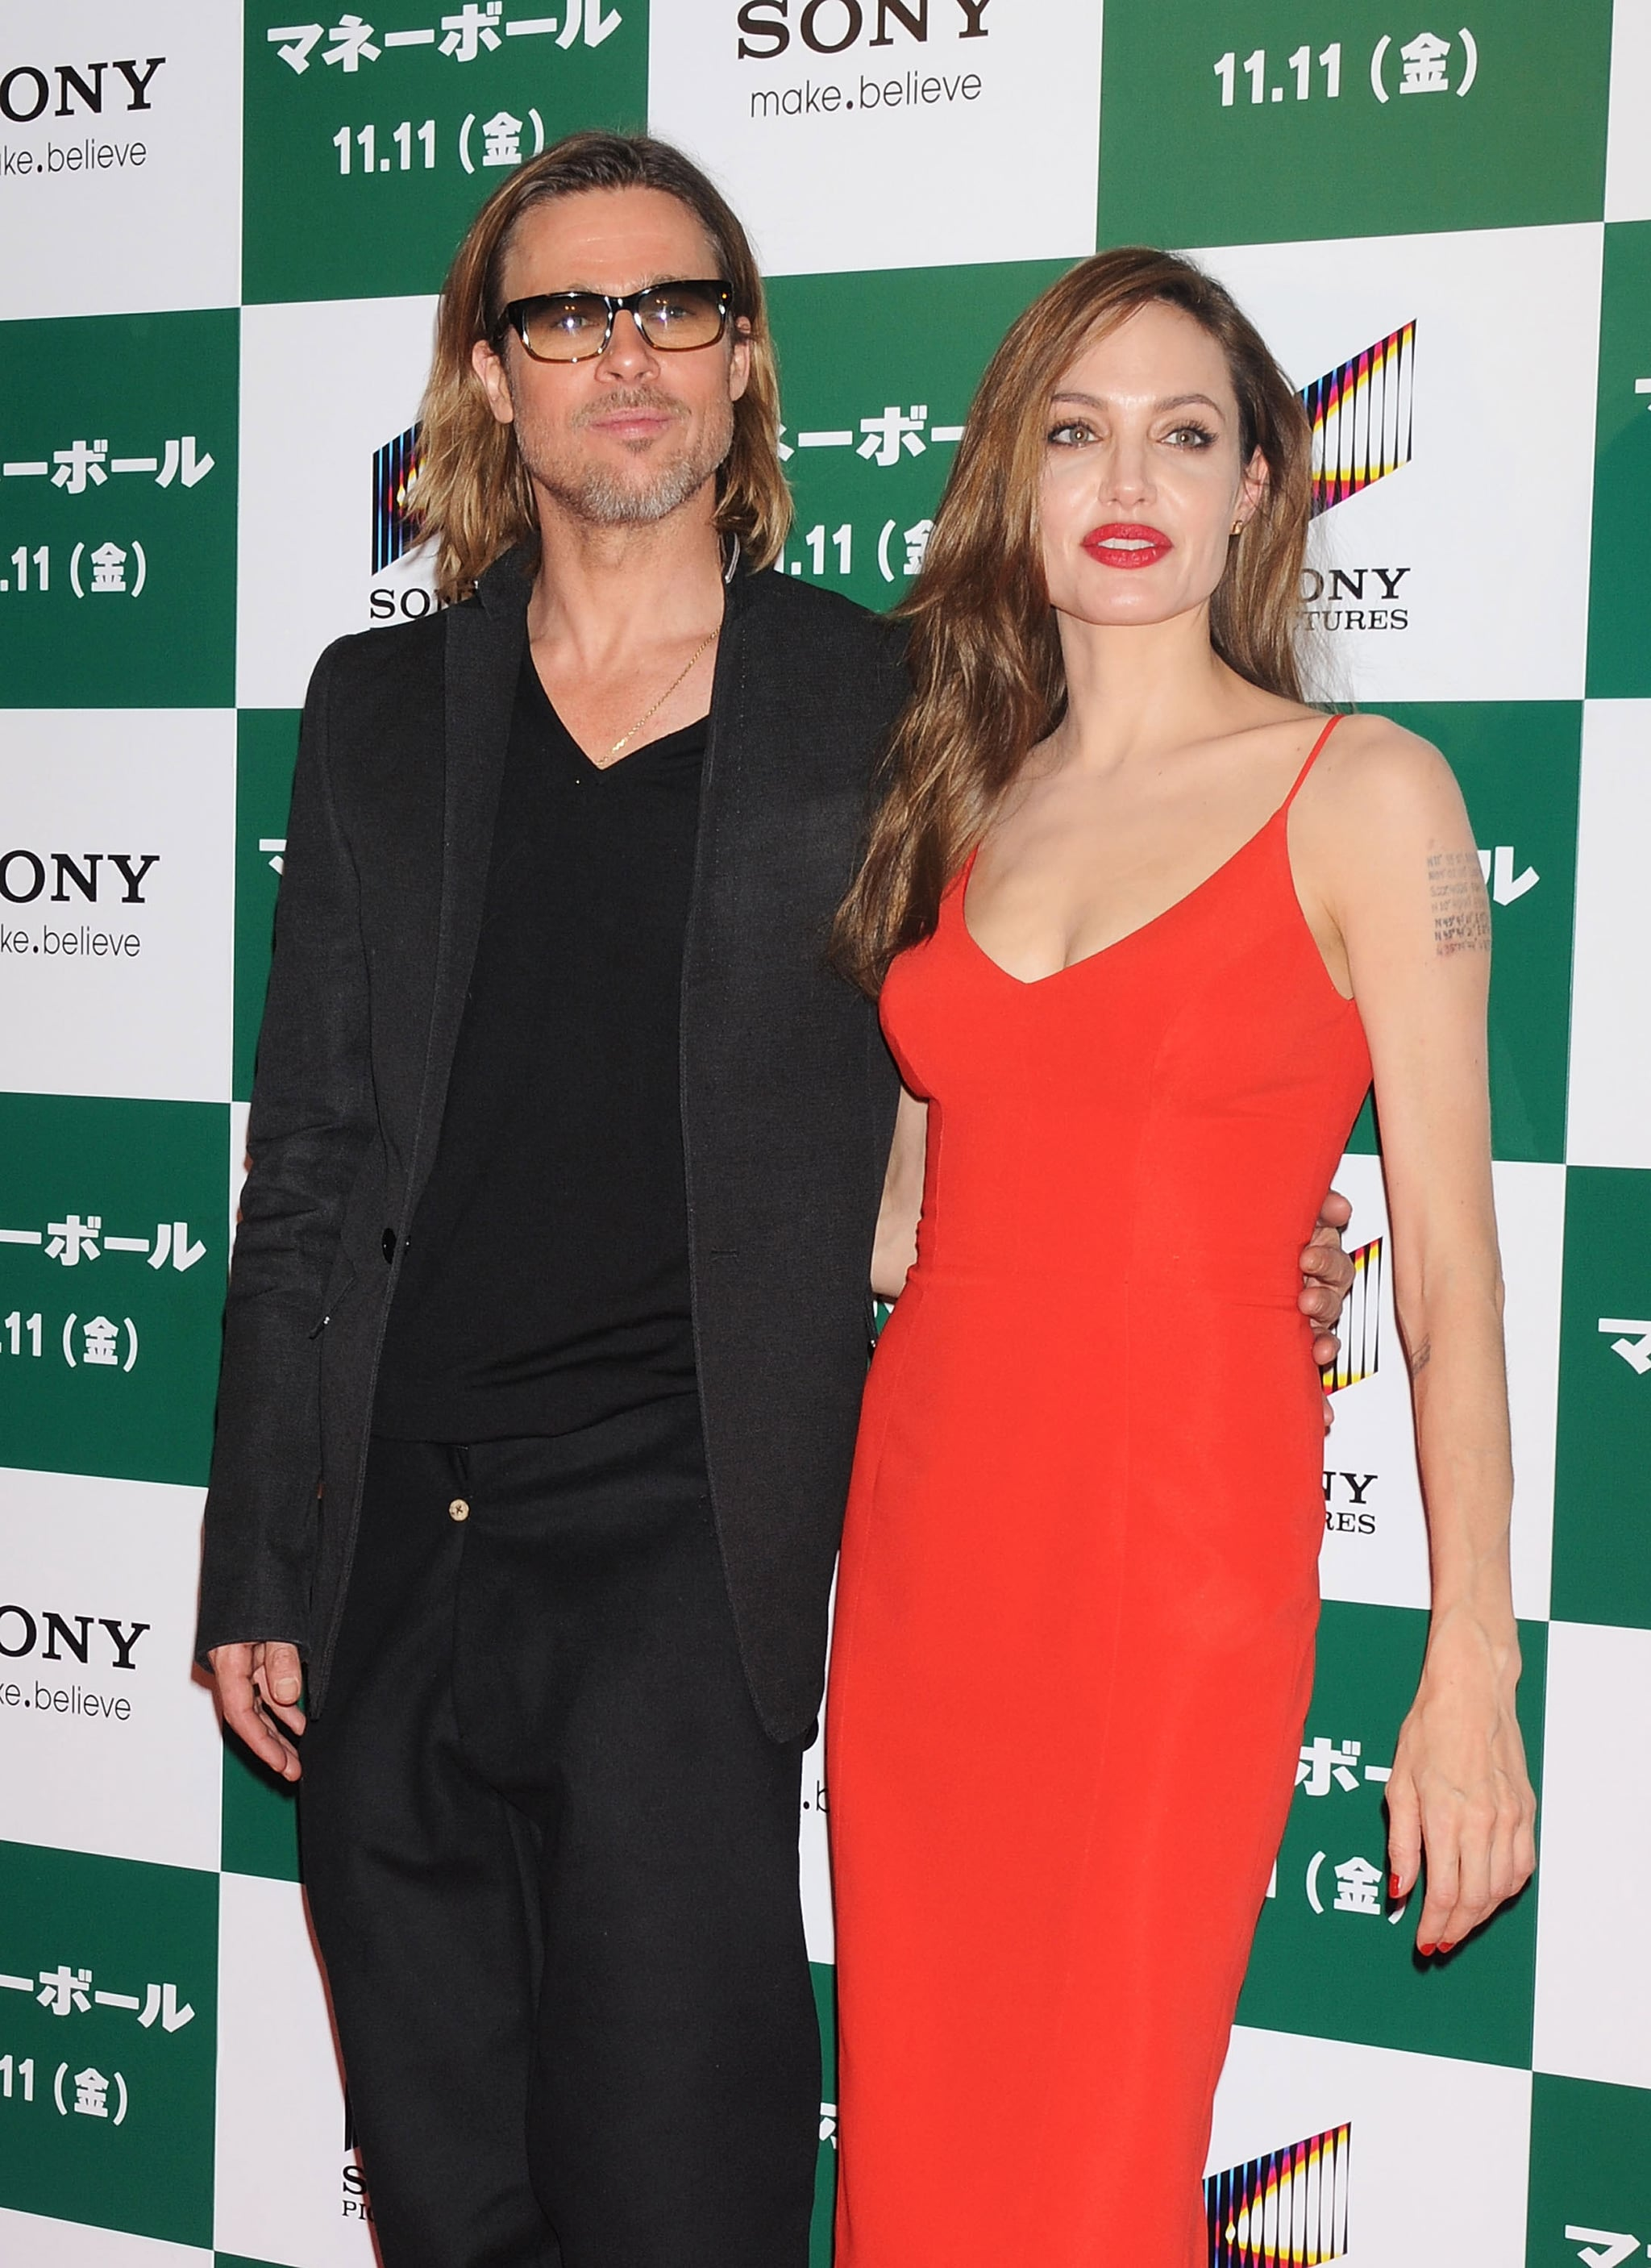 Brad Pitt and Angelina Jolie were effortlessly chic on the red carpet.